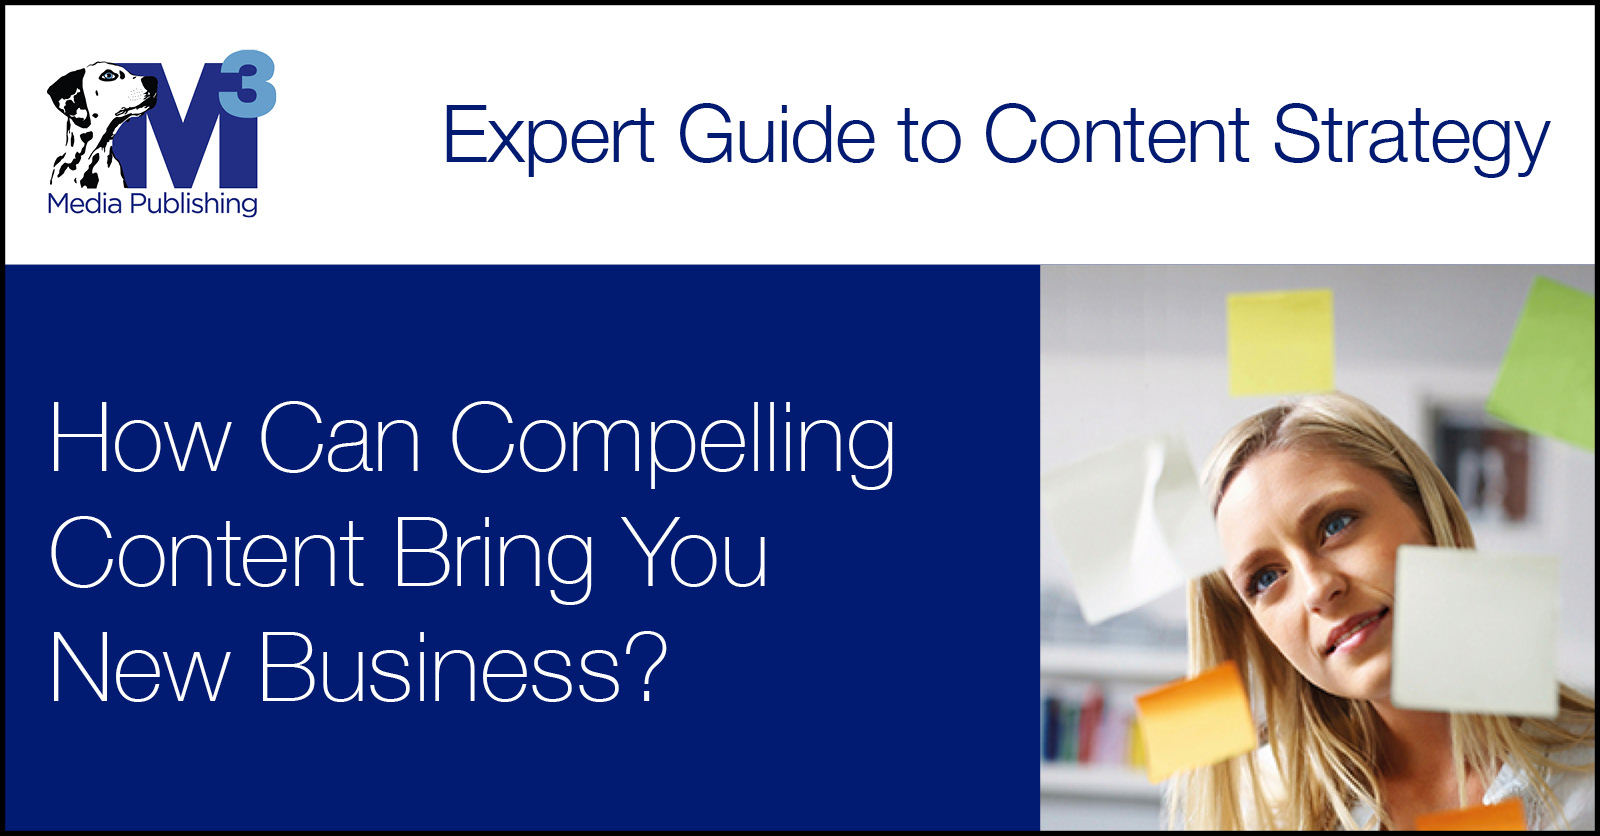 Compelling Content report